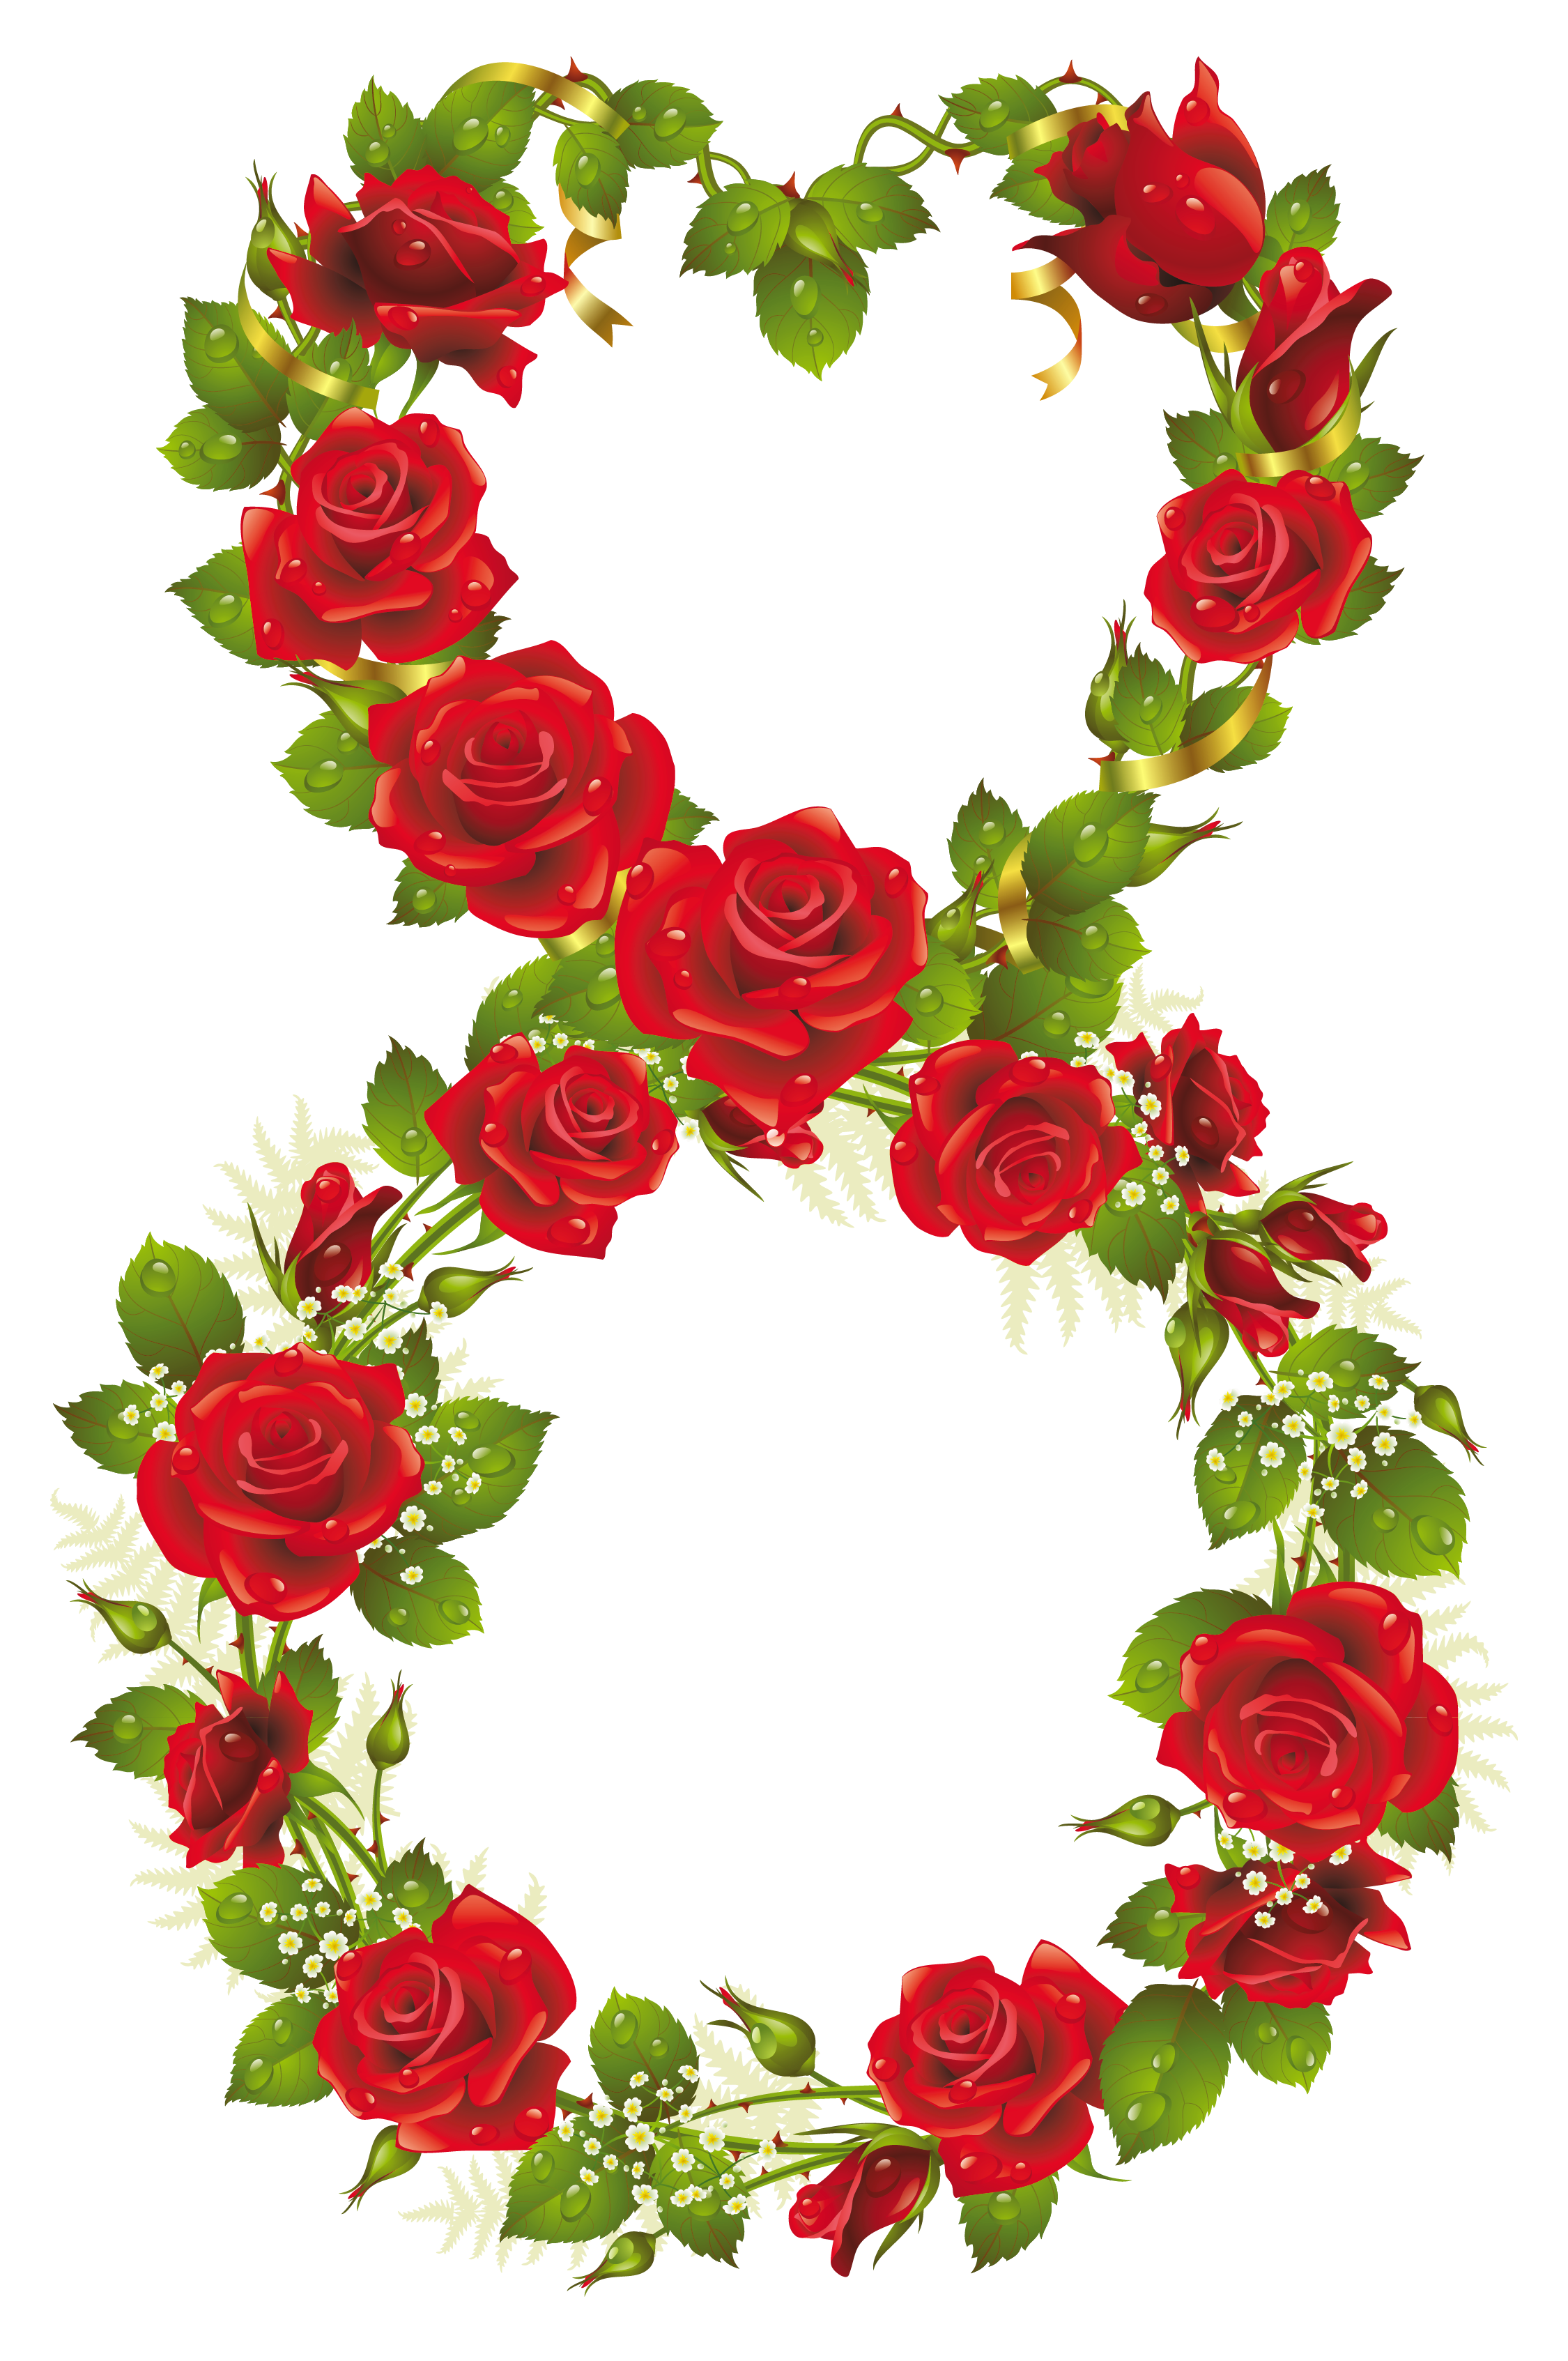 Eighth of with roses. March clipart flower garden